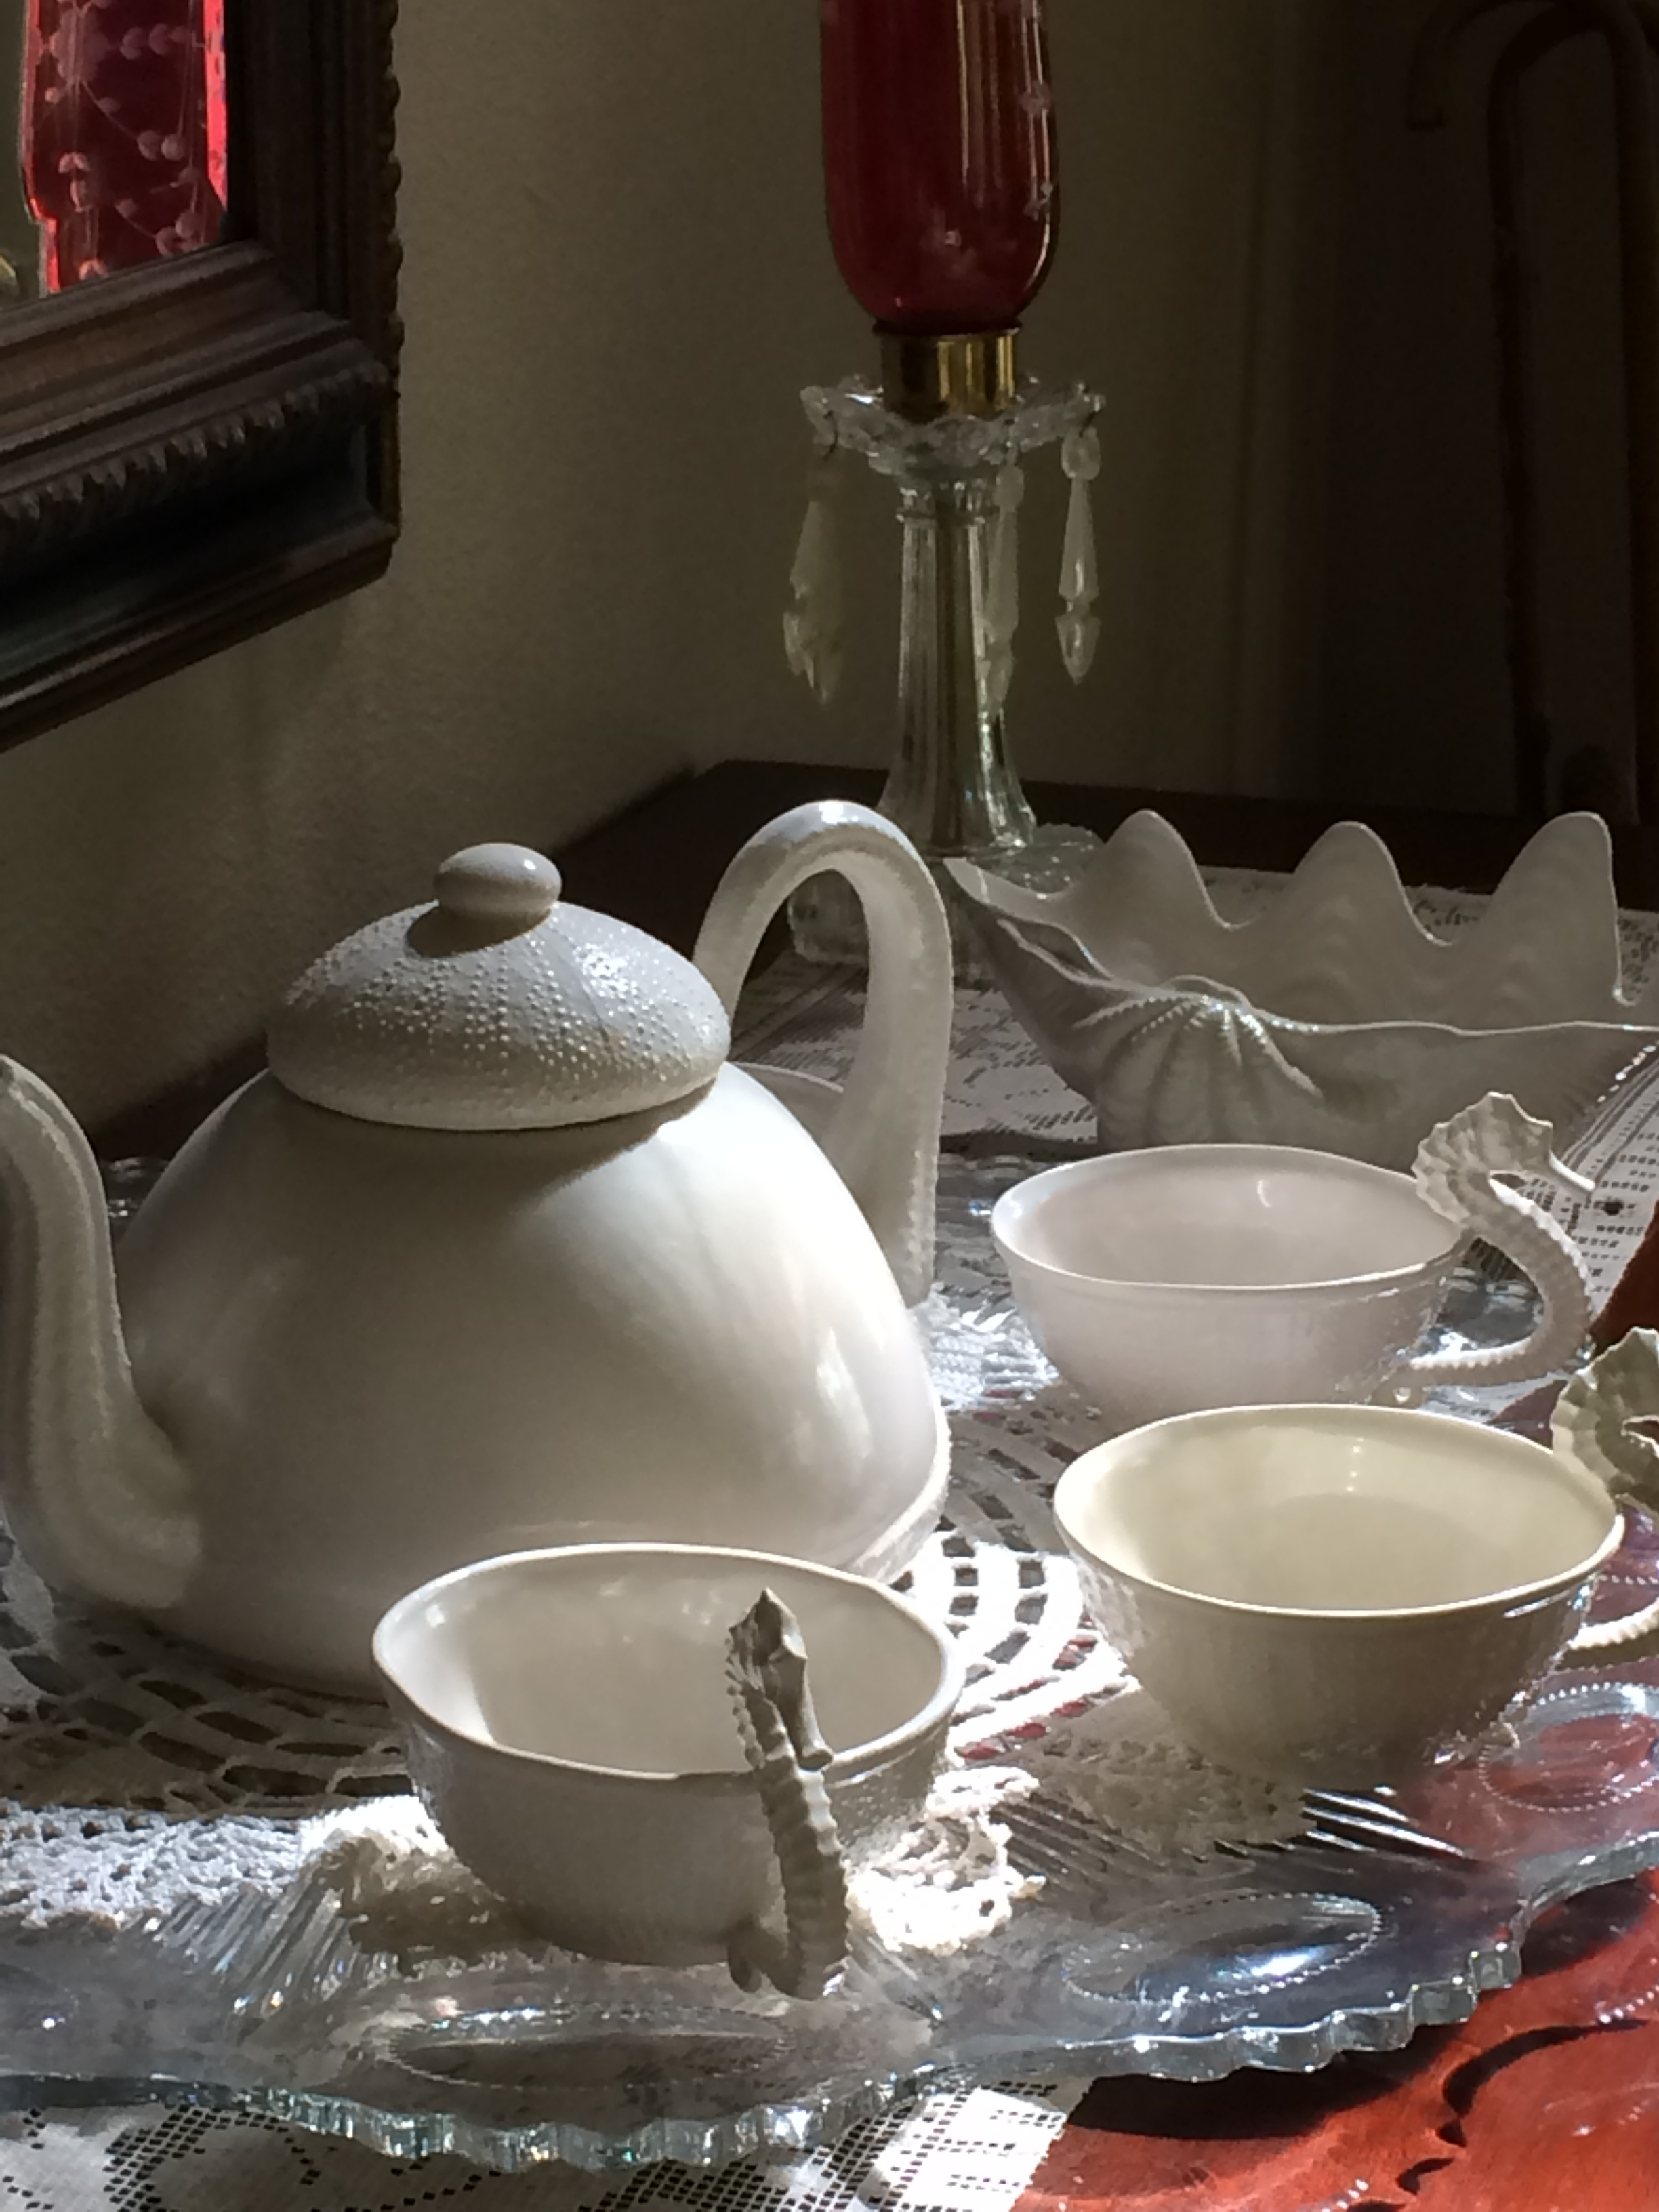 Porcelain Teacups surround a Made in USA Porcelain Teapot in the sunlight